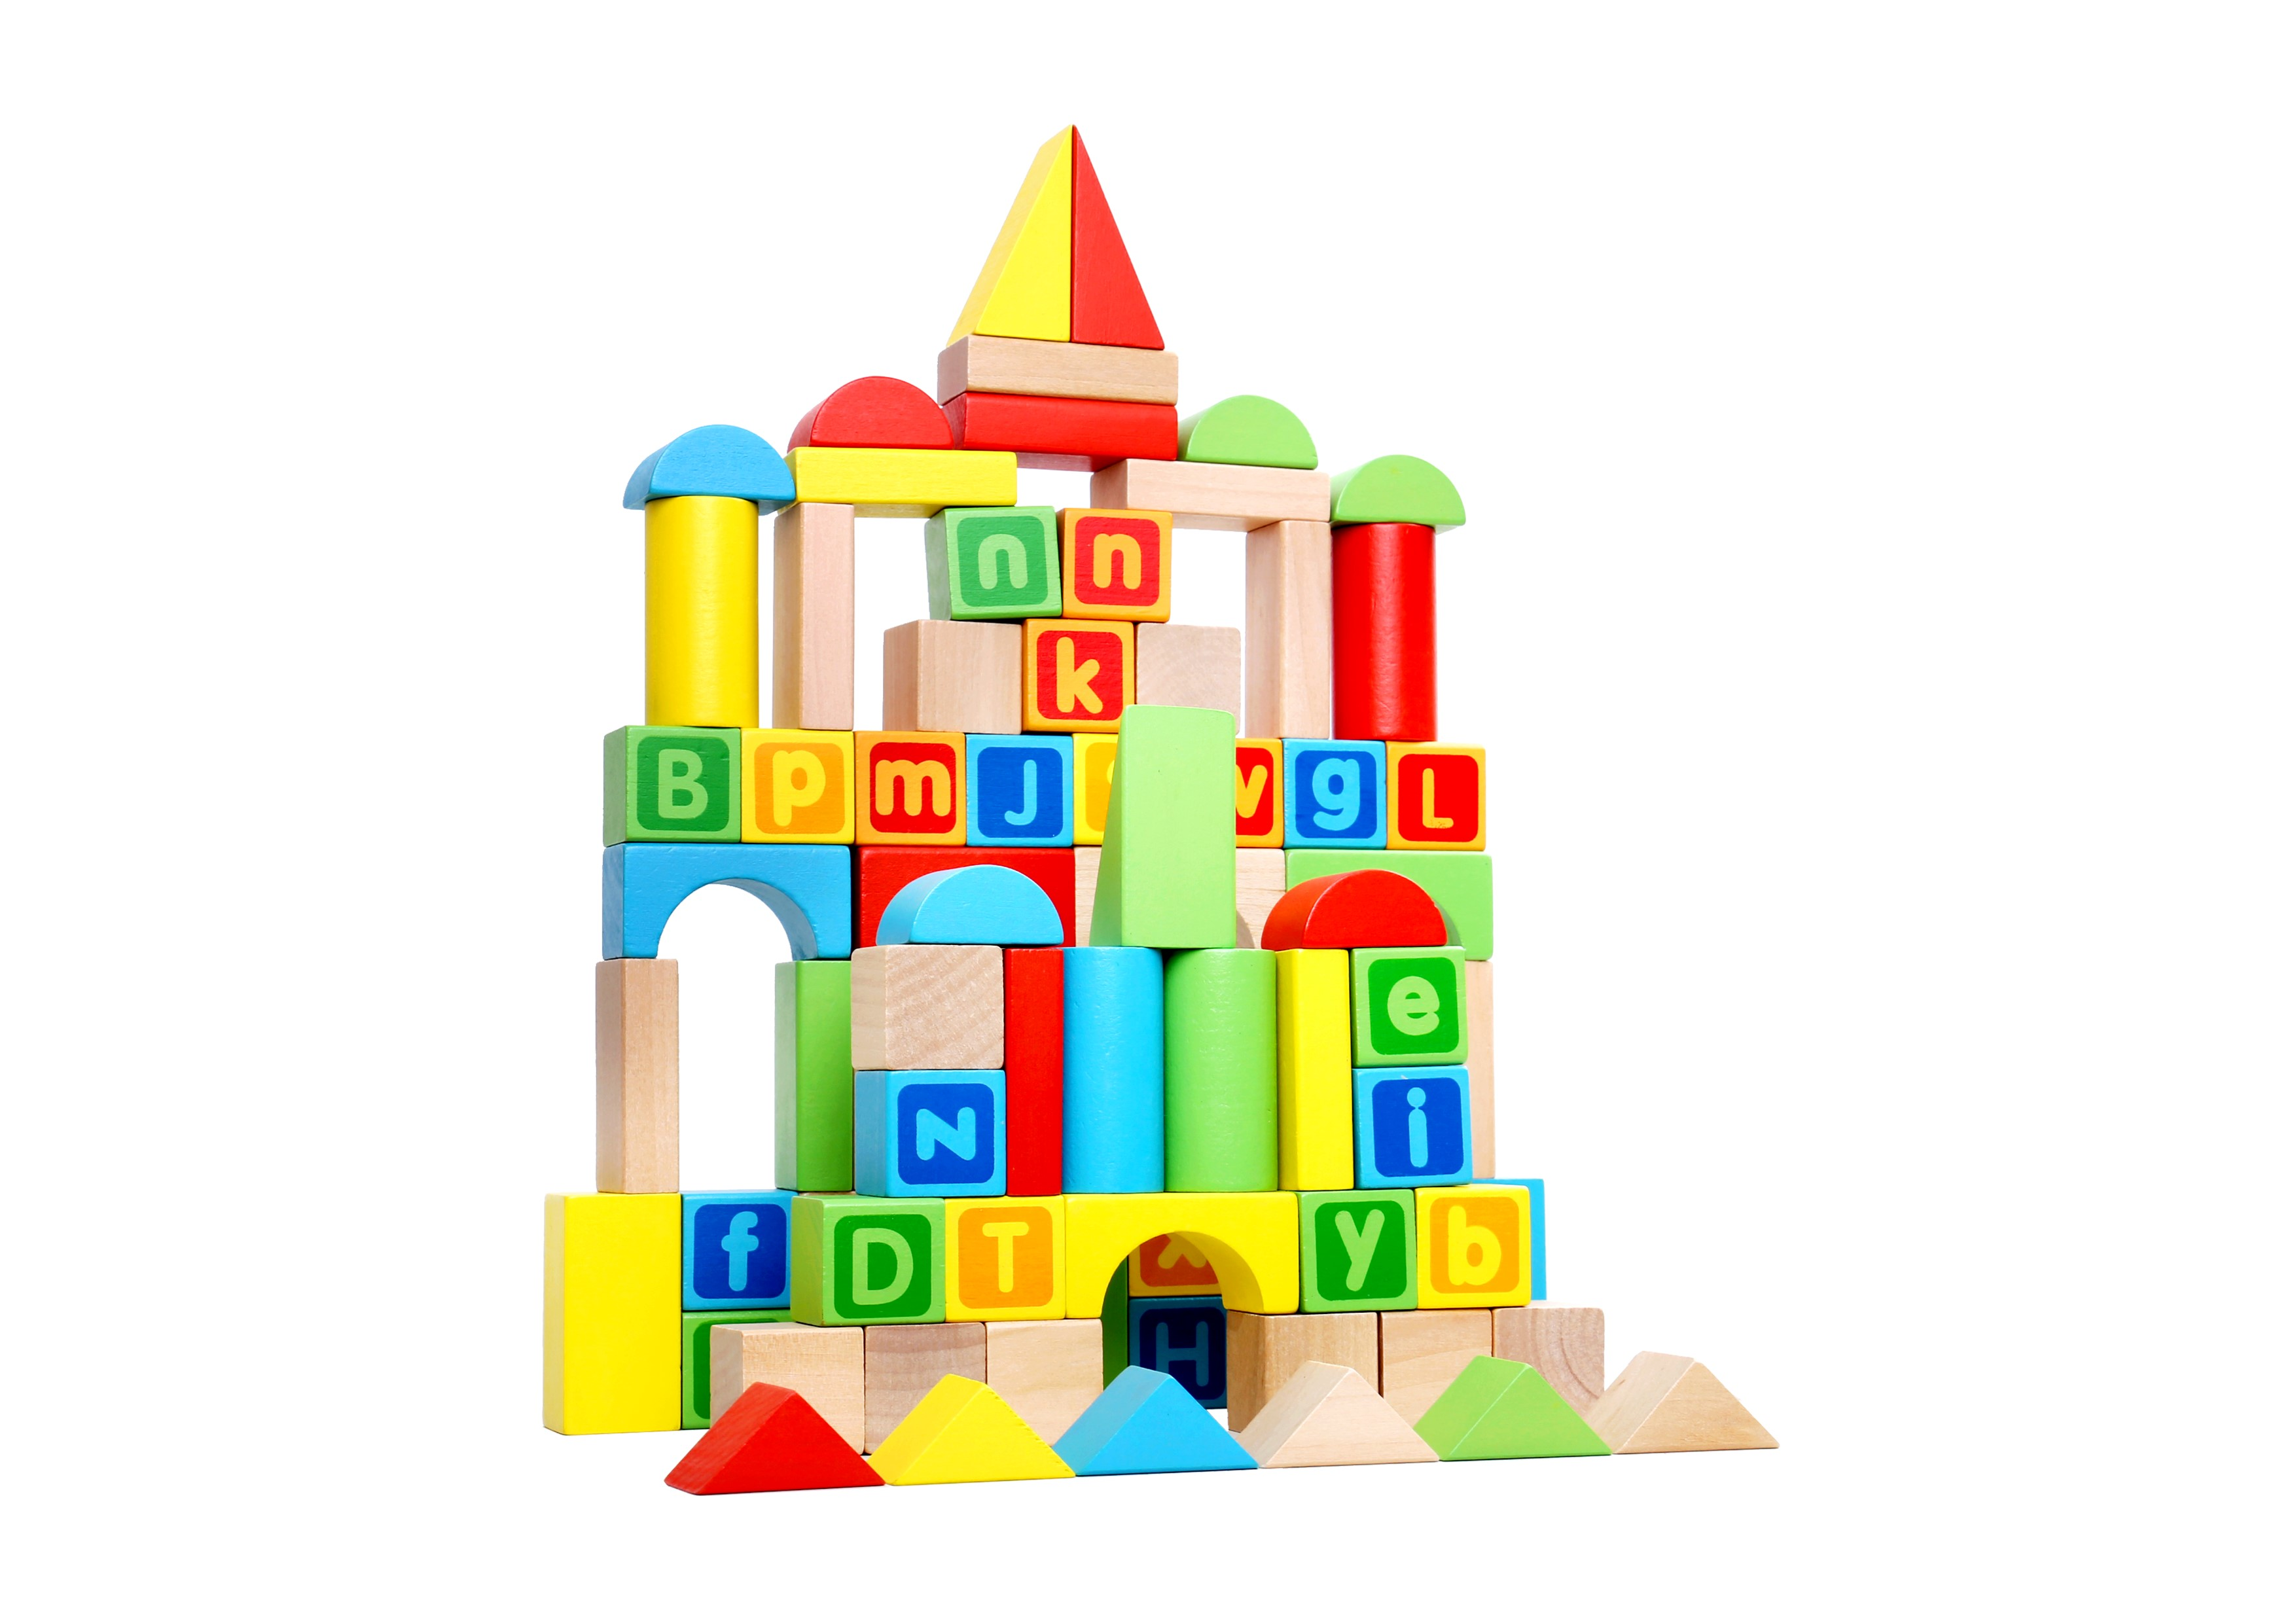 Toysters 80 Piece Wooden Colorful Classic Building Blocks Bpa Free Wood Abc Letter Block Set Game For Toddlers Interactive Stem Educational Toy